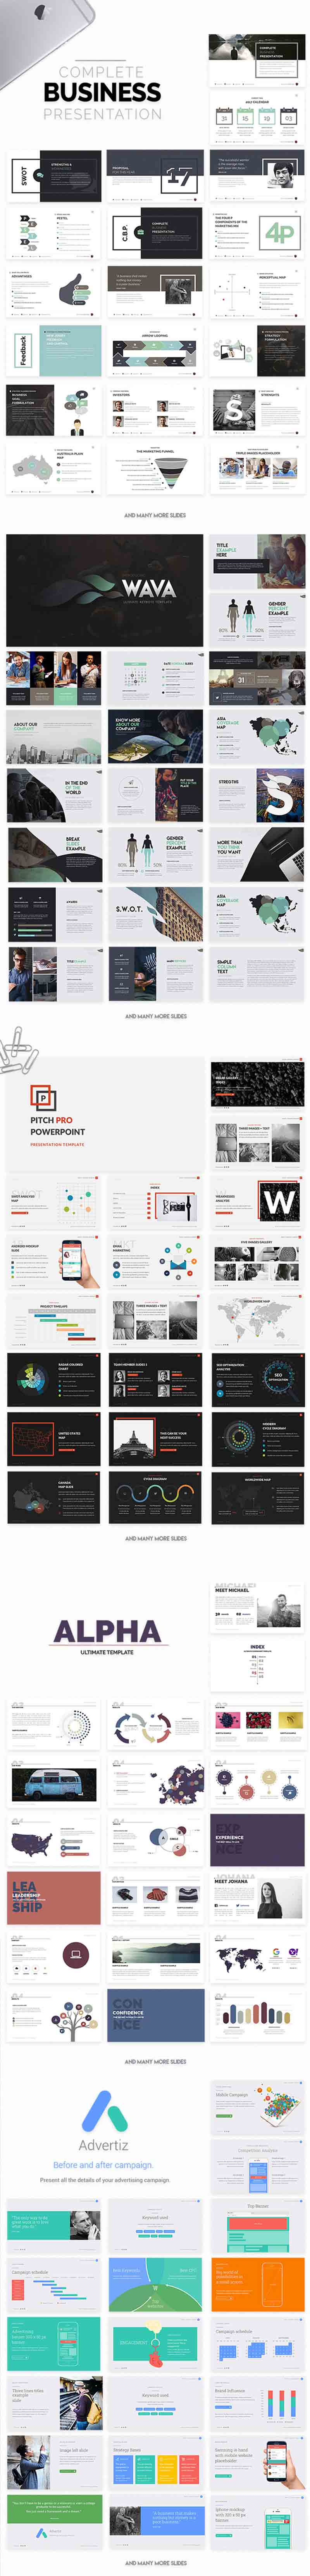 Powerpoint & Keynote Templates 1